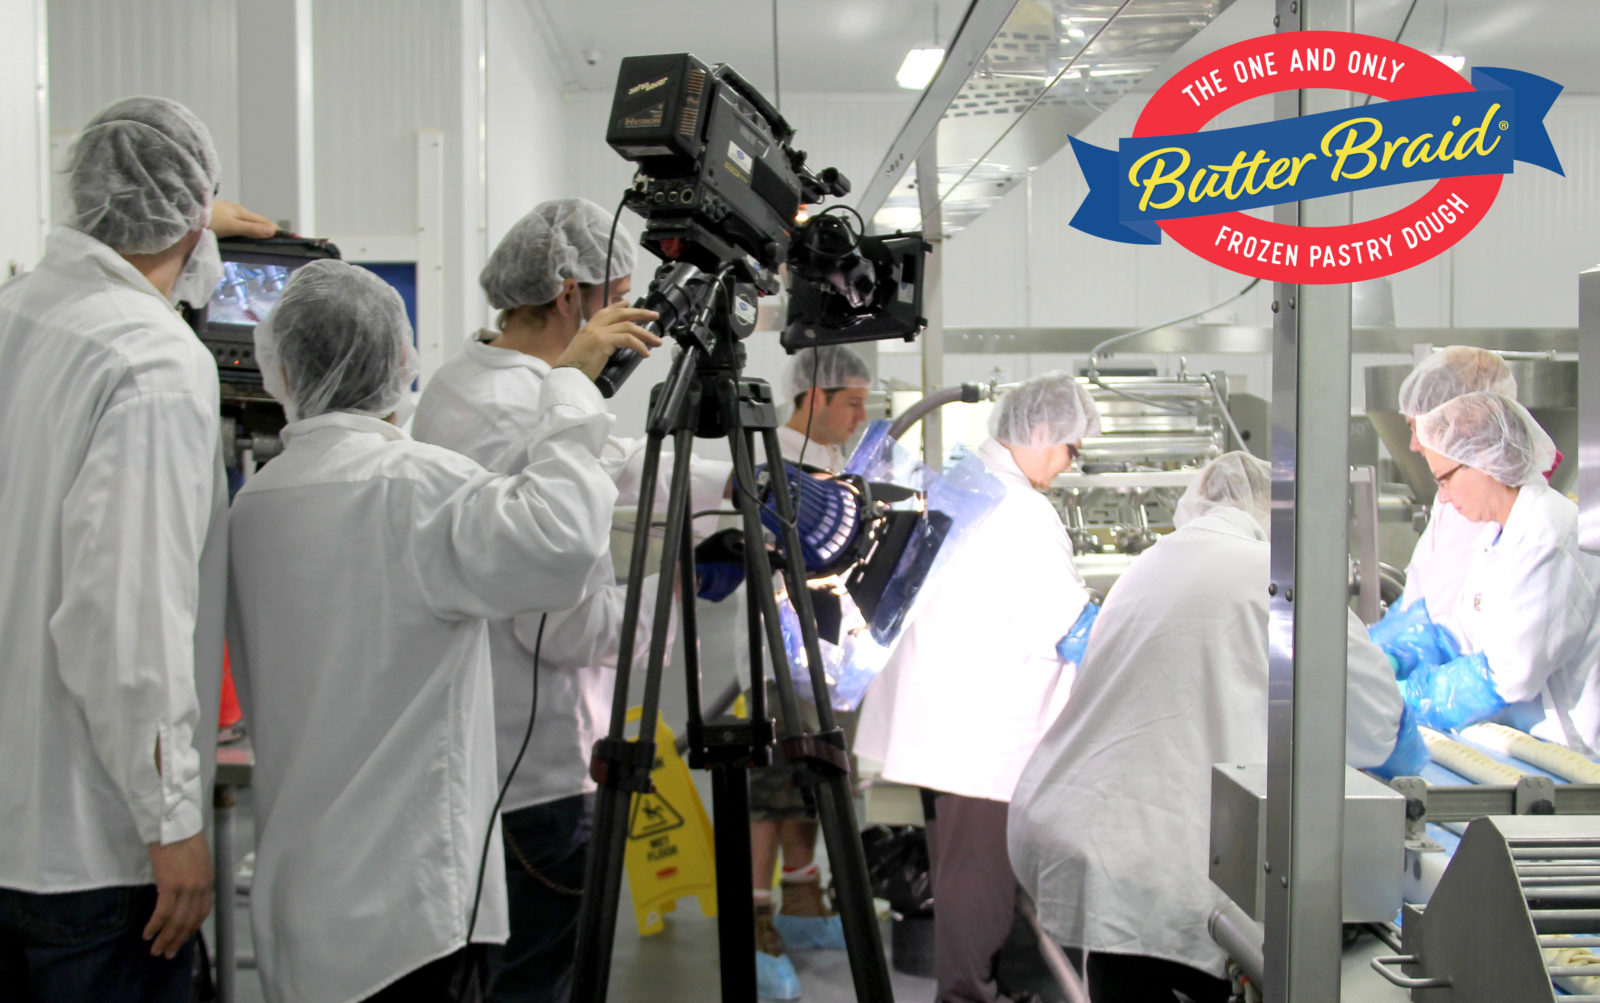 5 Things You Didn't Know About the Butter Braid® Brand